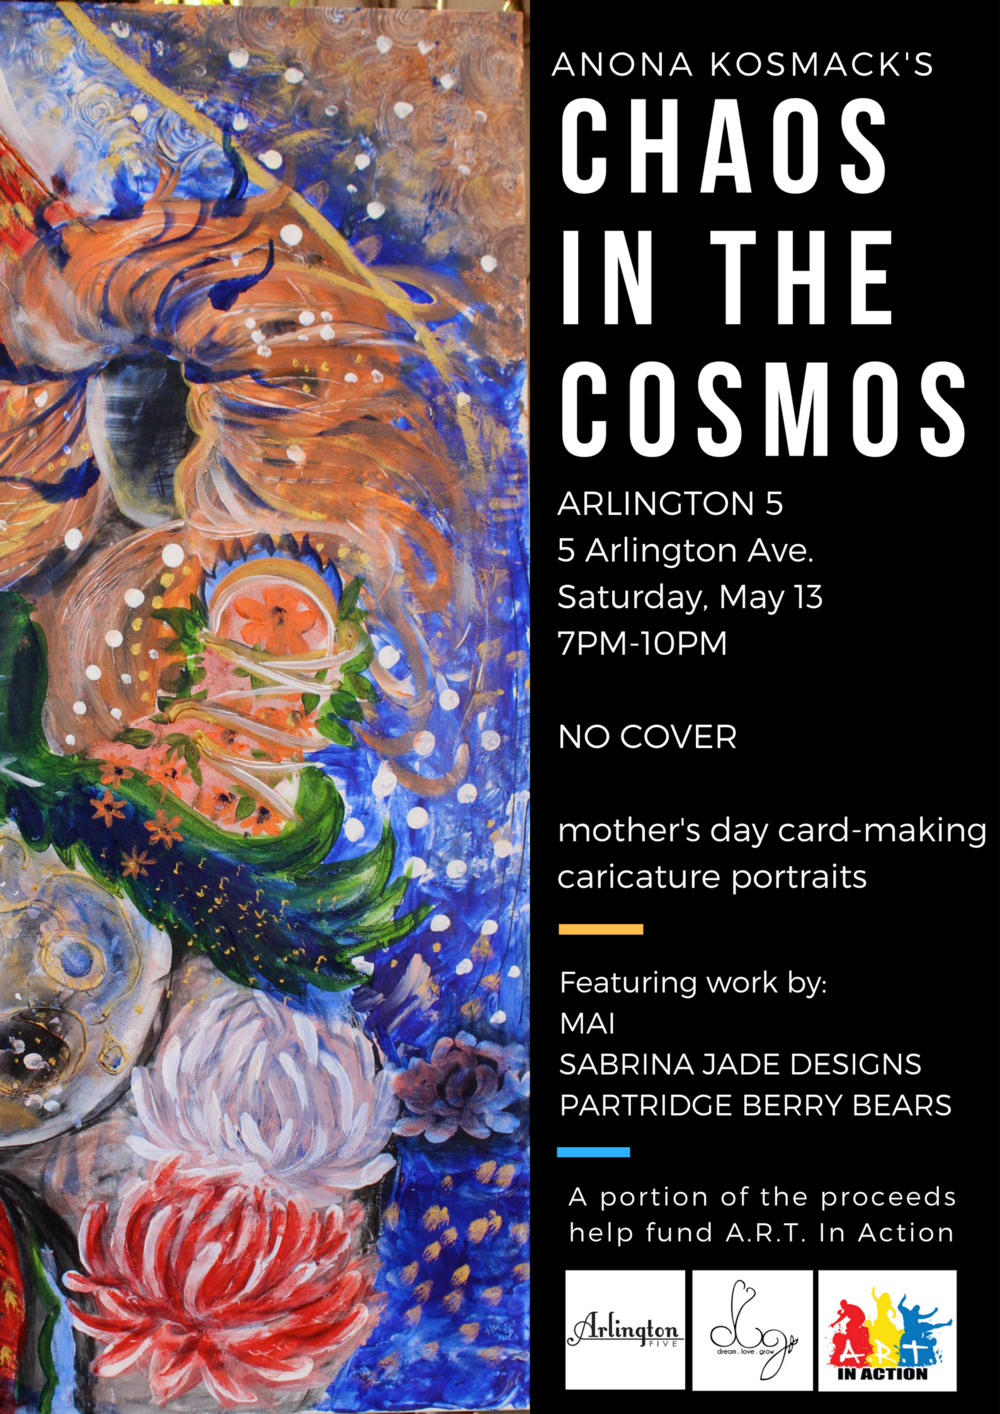 anona kosmack art show arlington five chaos in the cosmos